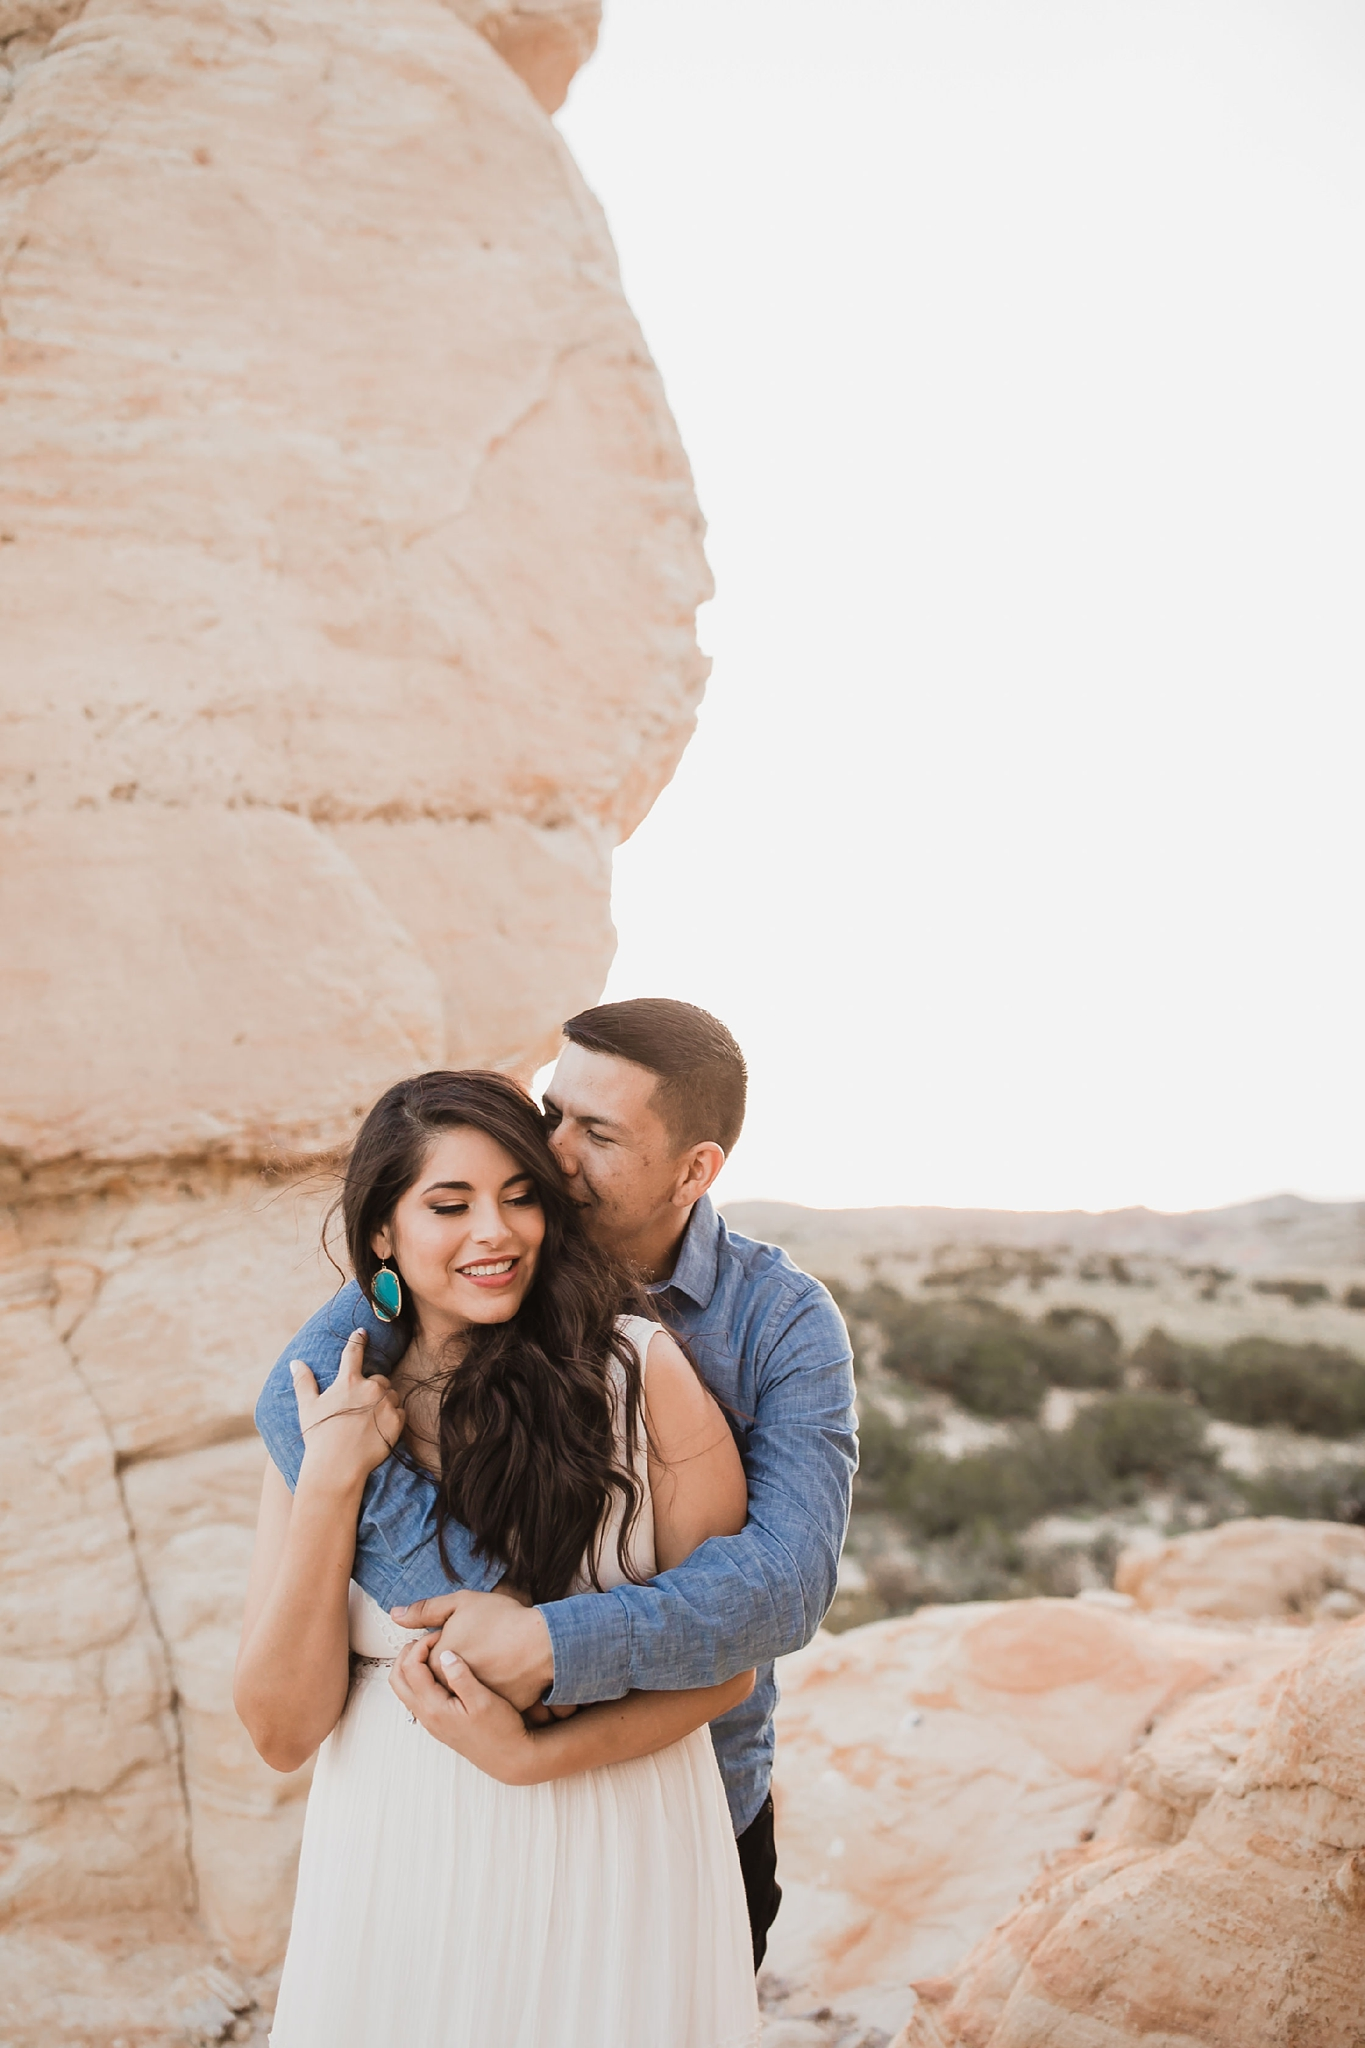 Alicia+lucia+photography+-+albuquerque+wedding+photographer+-+santa+fe+wedding+photography+-+new+mexico+wedding+photographer+-+new+mexico+wedding+-+wedding+makeup+-+makeup+artist+-+wedding+makeup+artist+-+bridal+makeup_0015.jpg